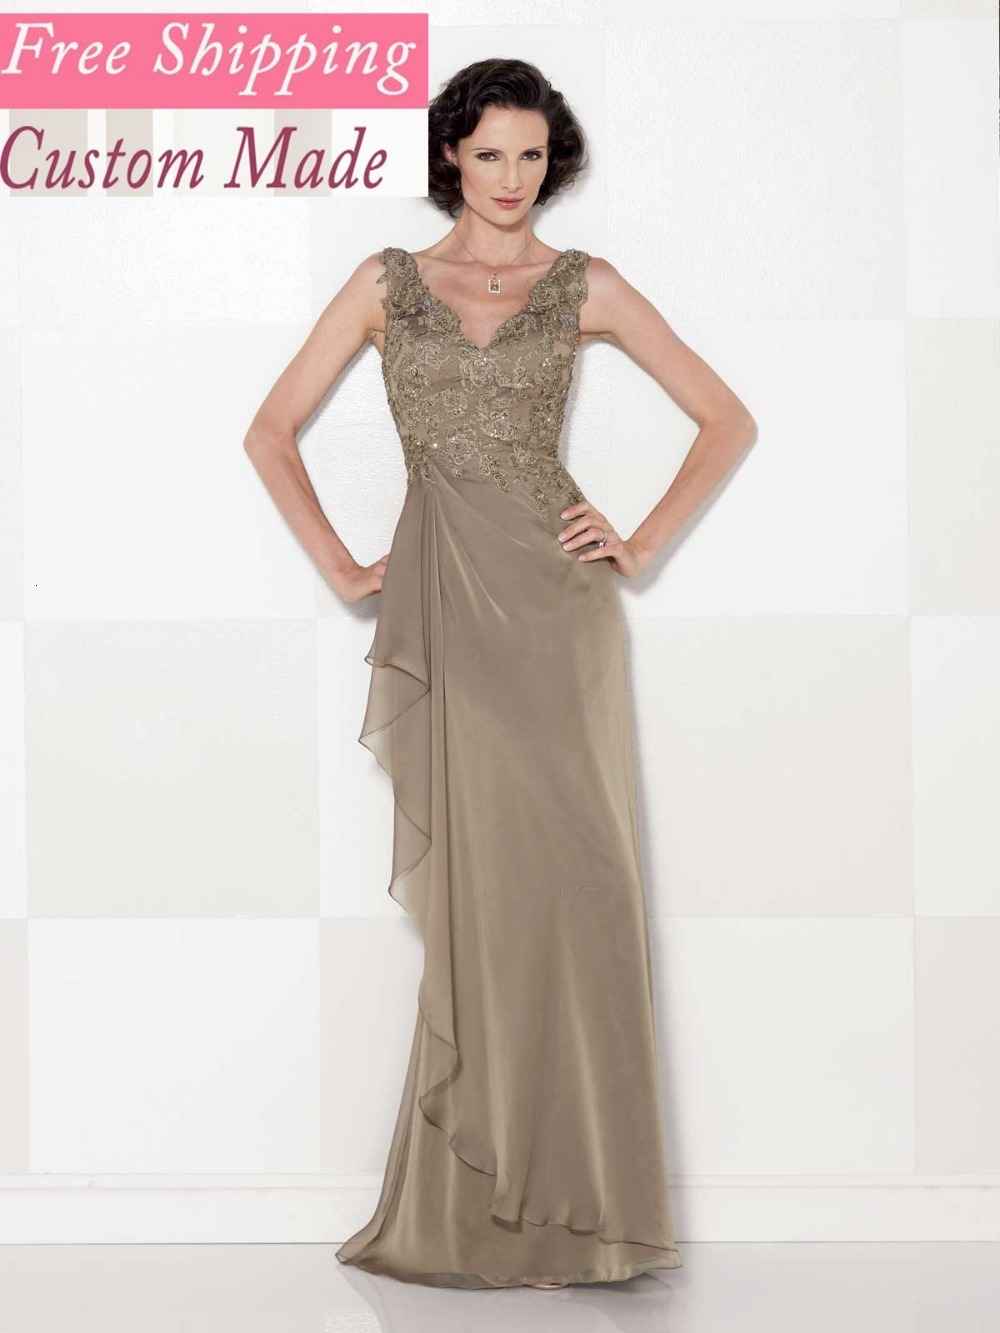 Free Shipping New Arrival Sheath V-neck Sleeveless Elastic Satin Pleated Mother Of The Bride Dresses Hot9